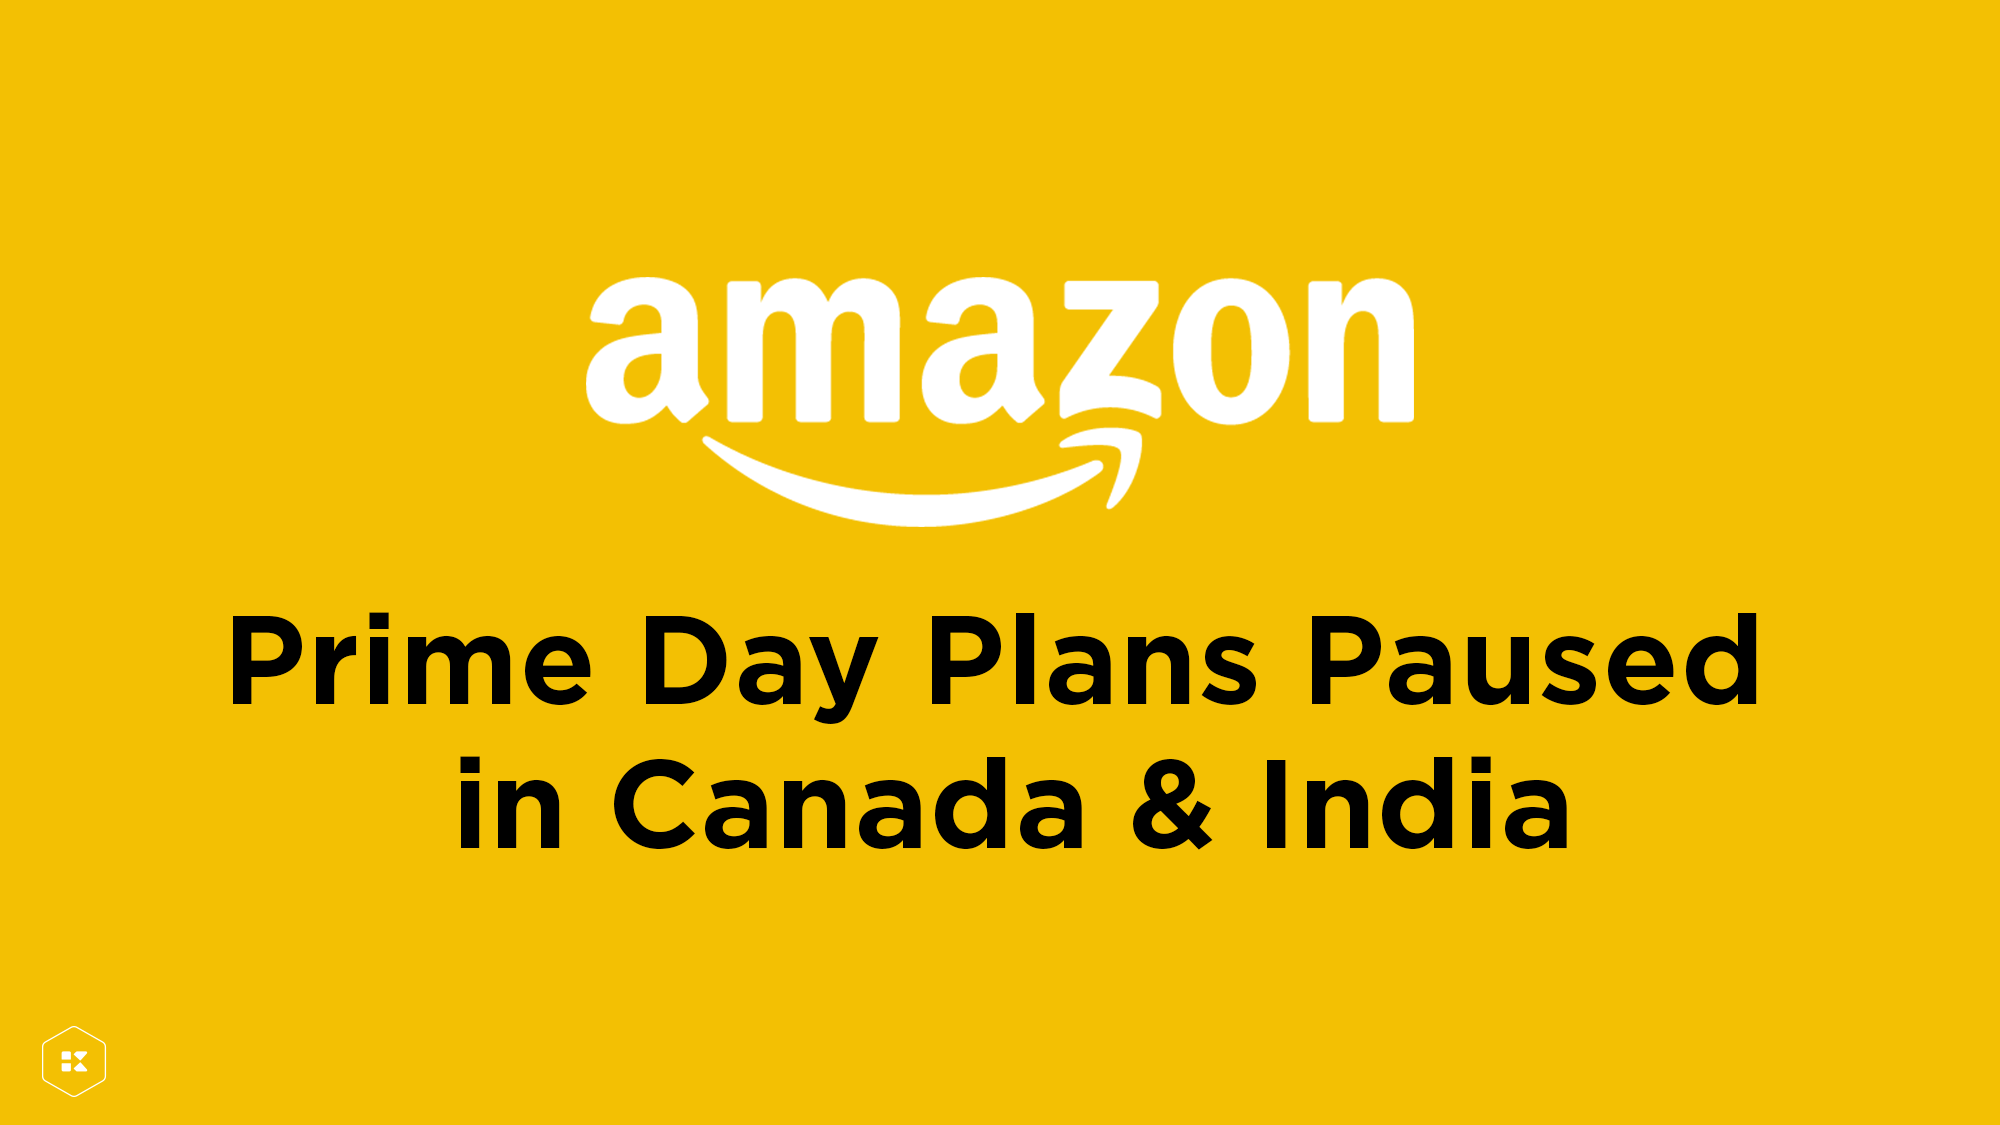 Amazon Pauses Prime Day Plans for Canada & India due to COVID-19 Concerns